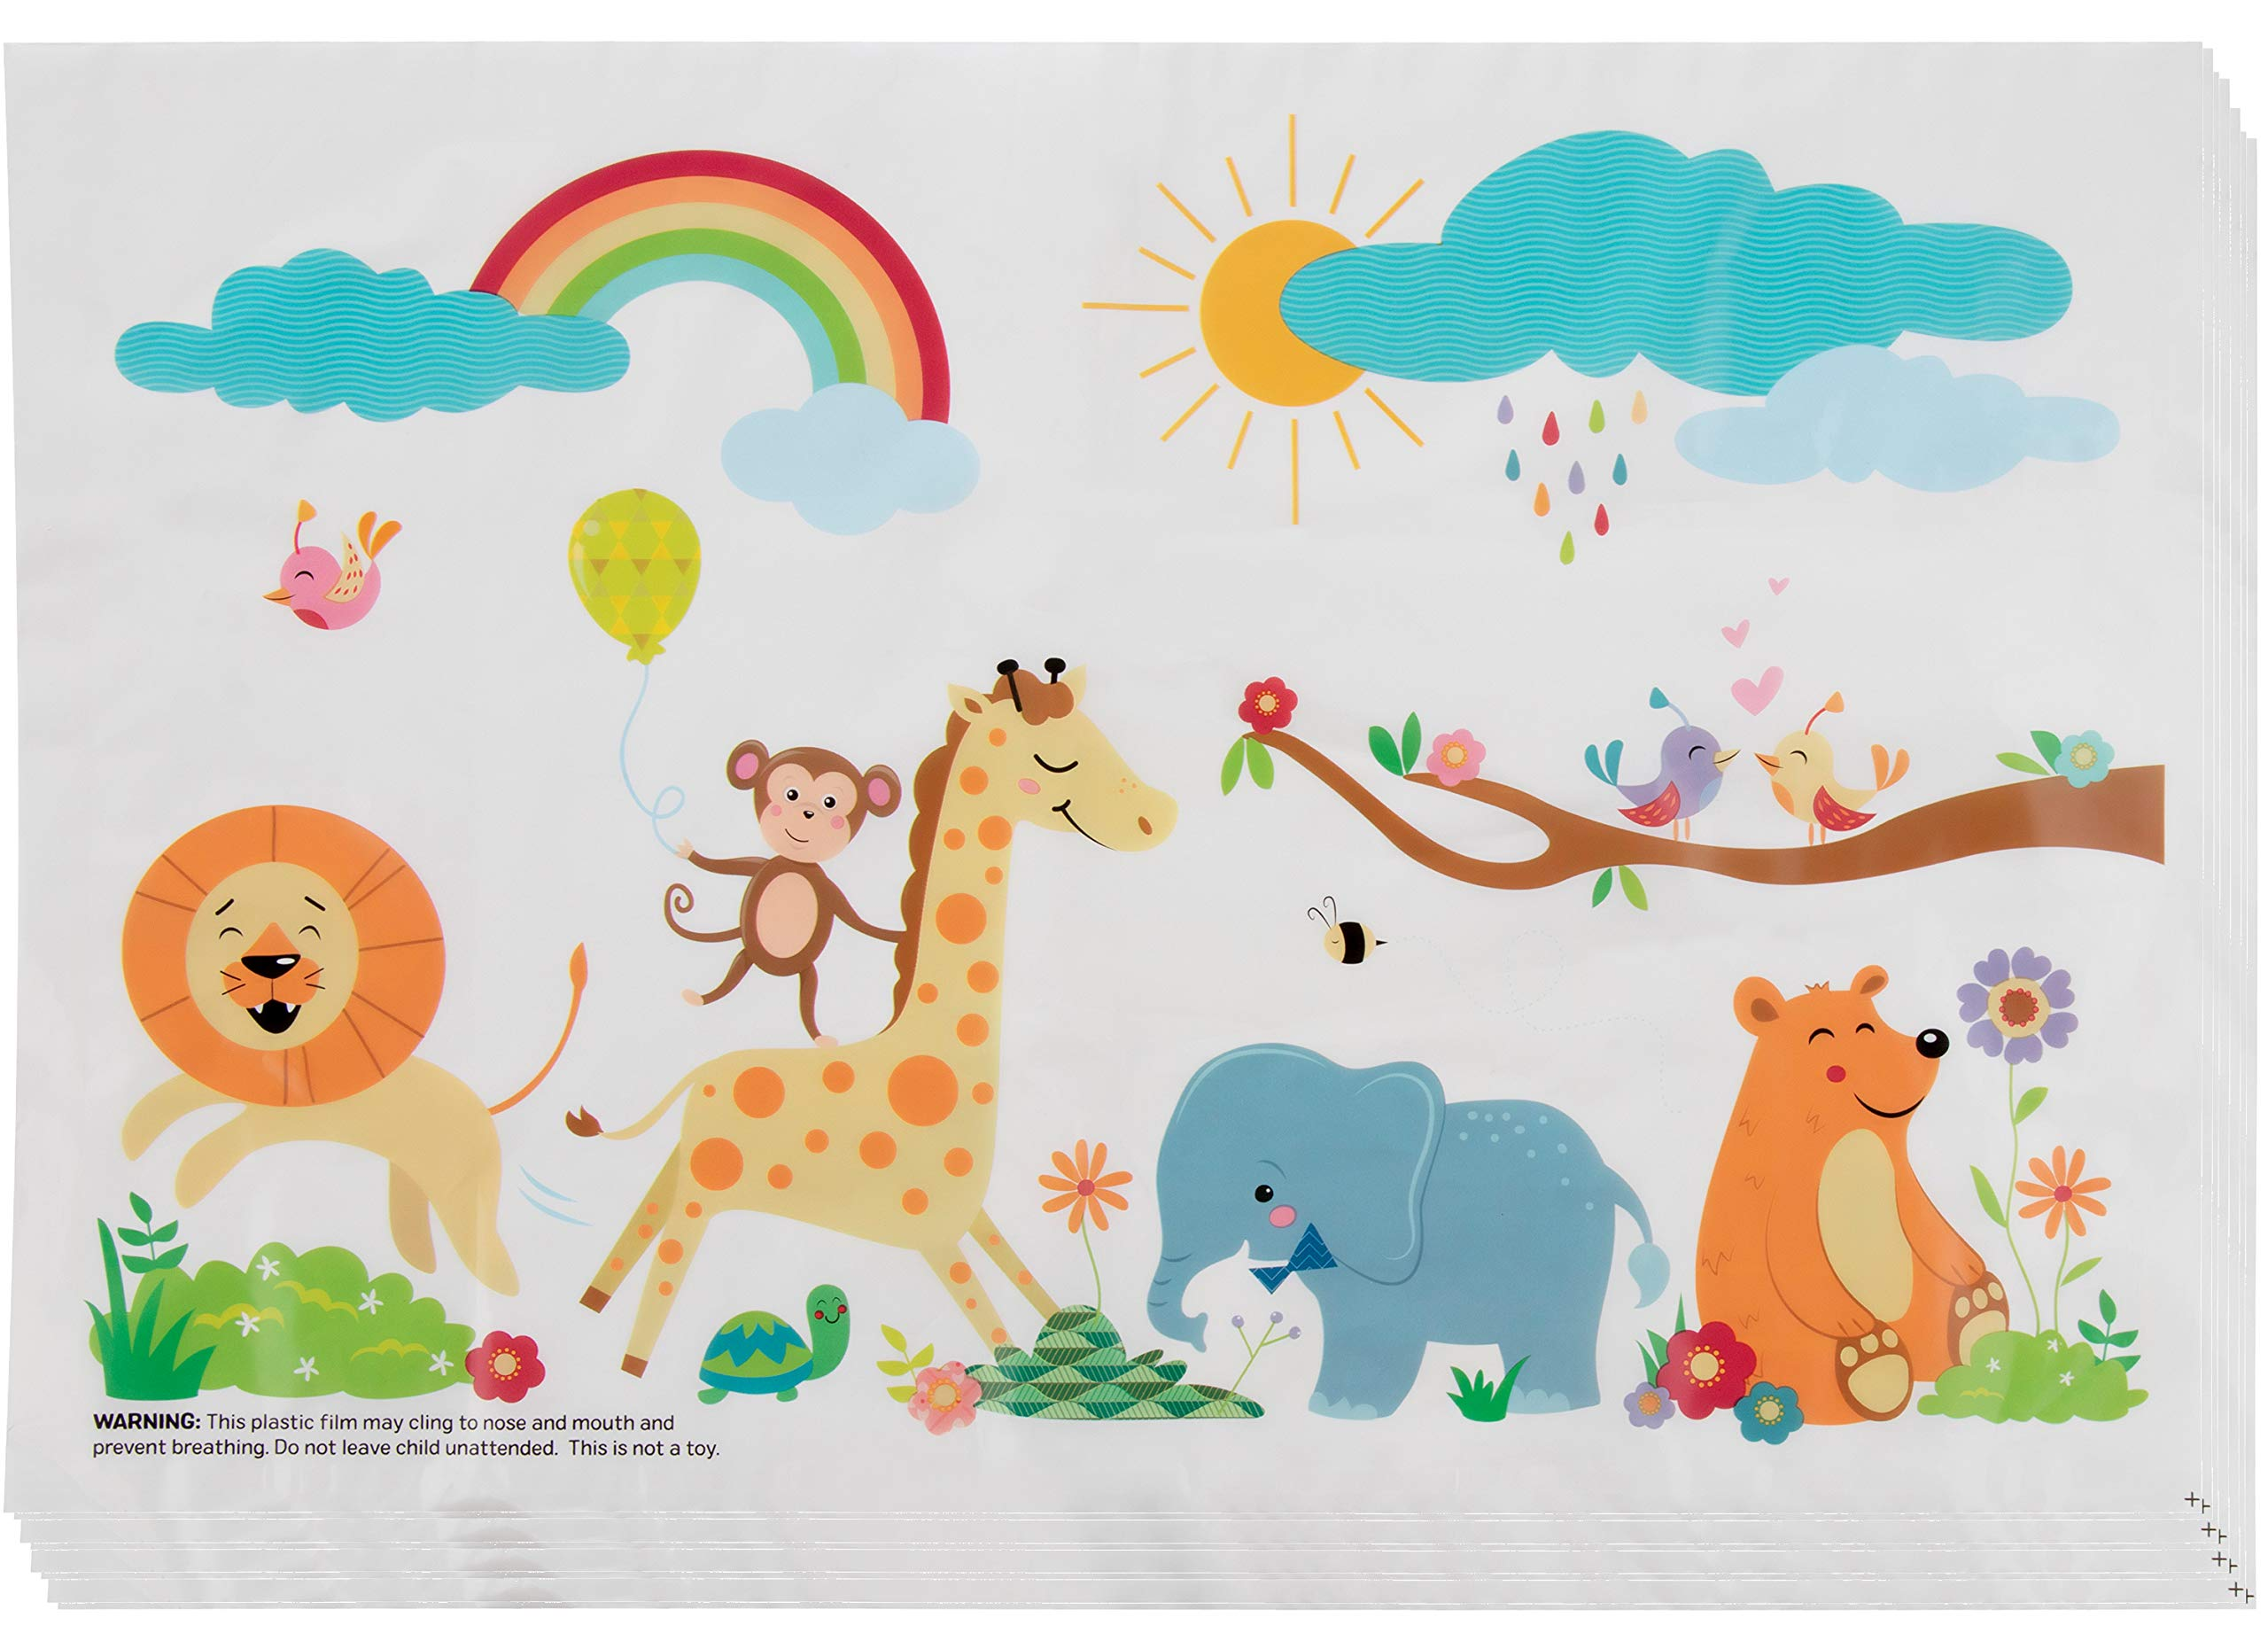 Safari Disposable Placemats - 100-Pack Baby Toddler Kids Table Top Mats, BPA-Free Self Adhesive Animal Themed Sticky Mats, Safe for Home and Restaurants, Foldable Design Easy Cleanup, 12 x 18 Inches by Juvale